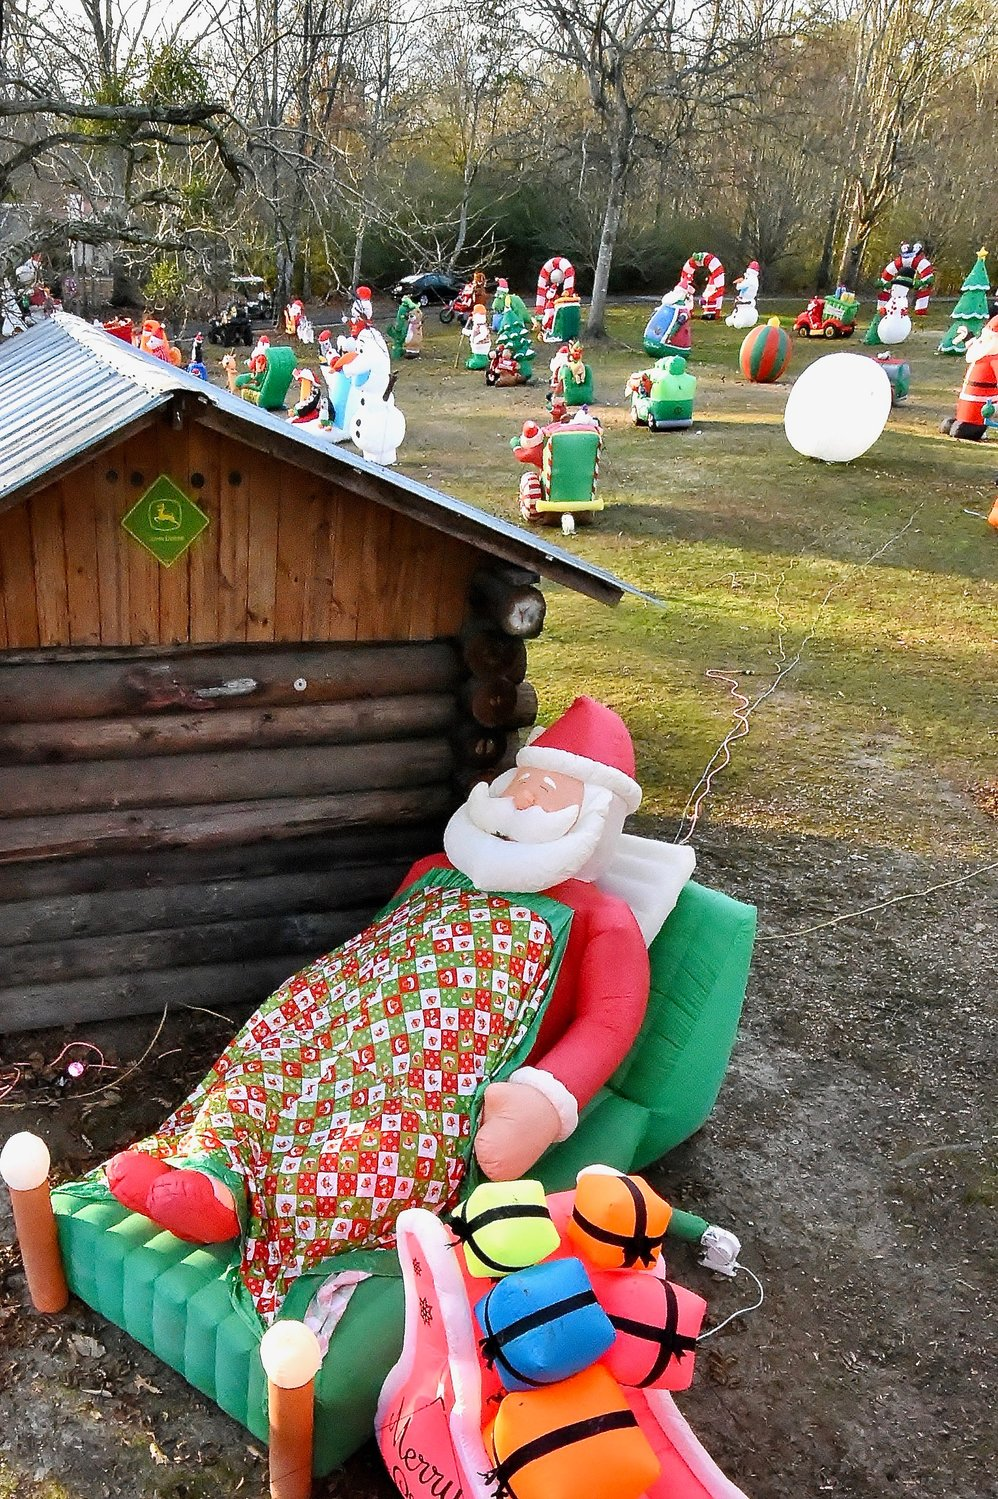 A large snoozing Santa is among the more than 300 inflatables on the front lawn of the home of Jerry and Sheila McGuirt.